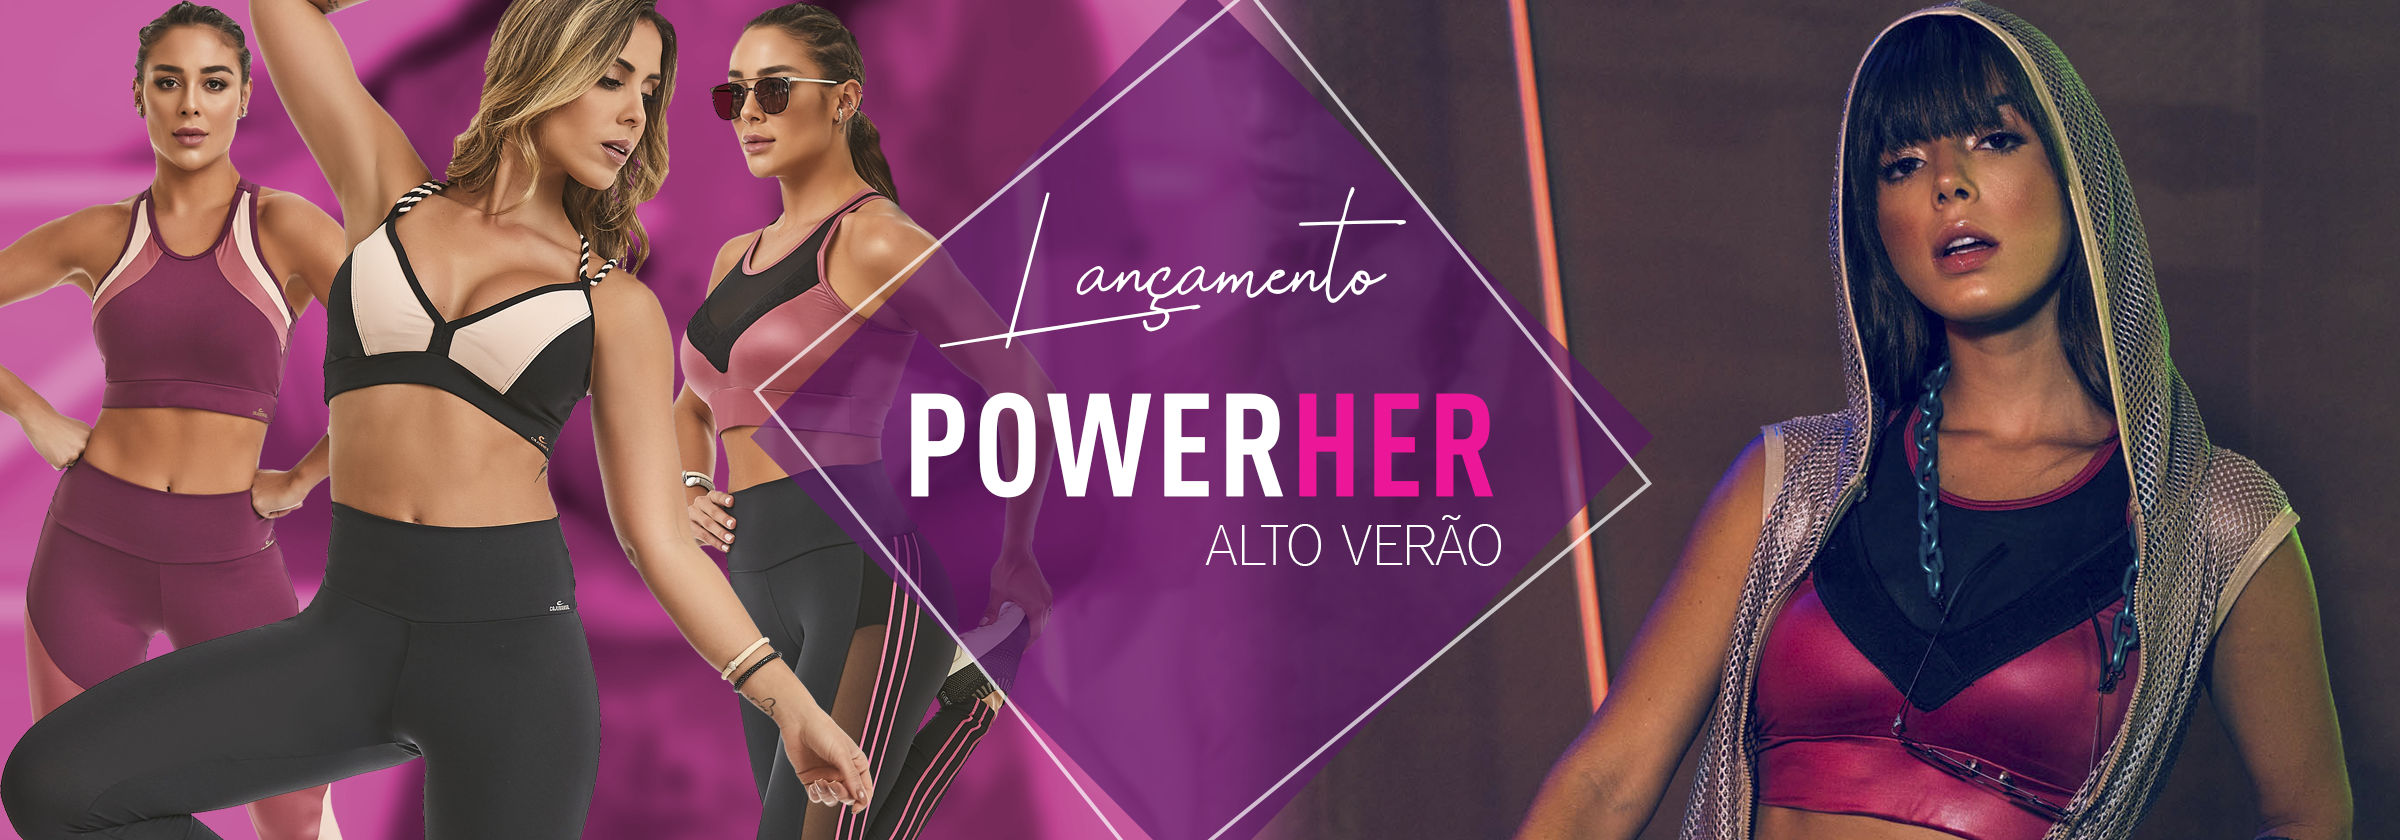 POWERHER Alto Verão - SHOP NOW